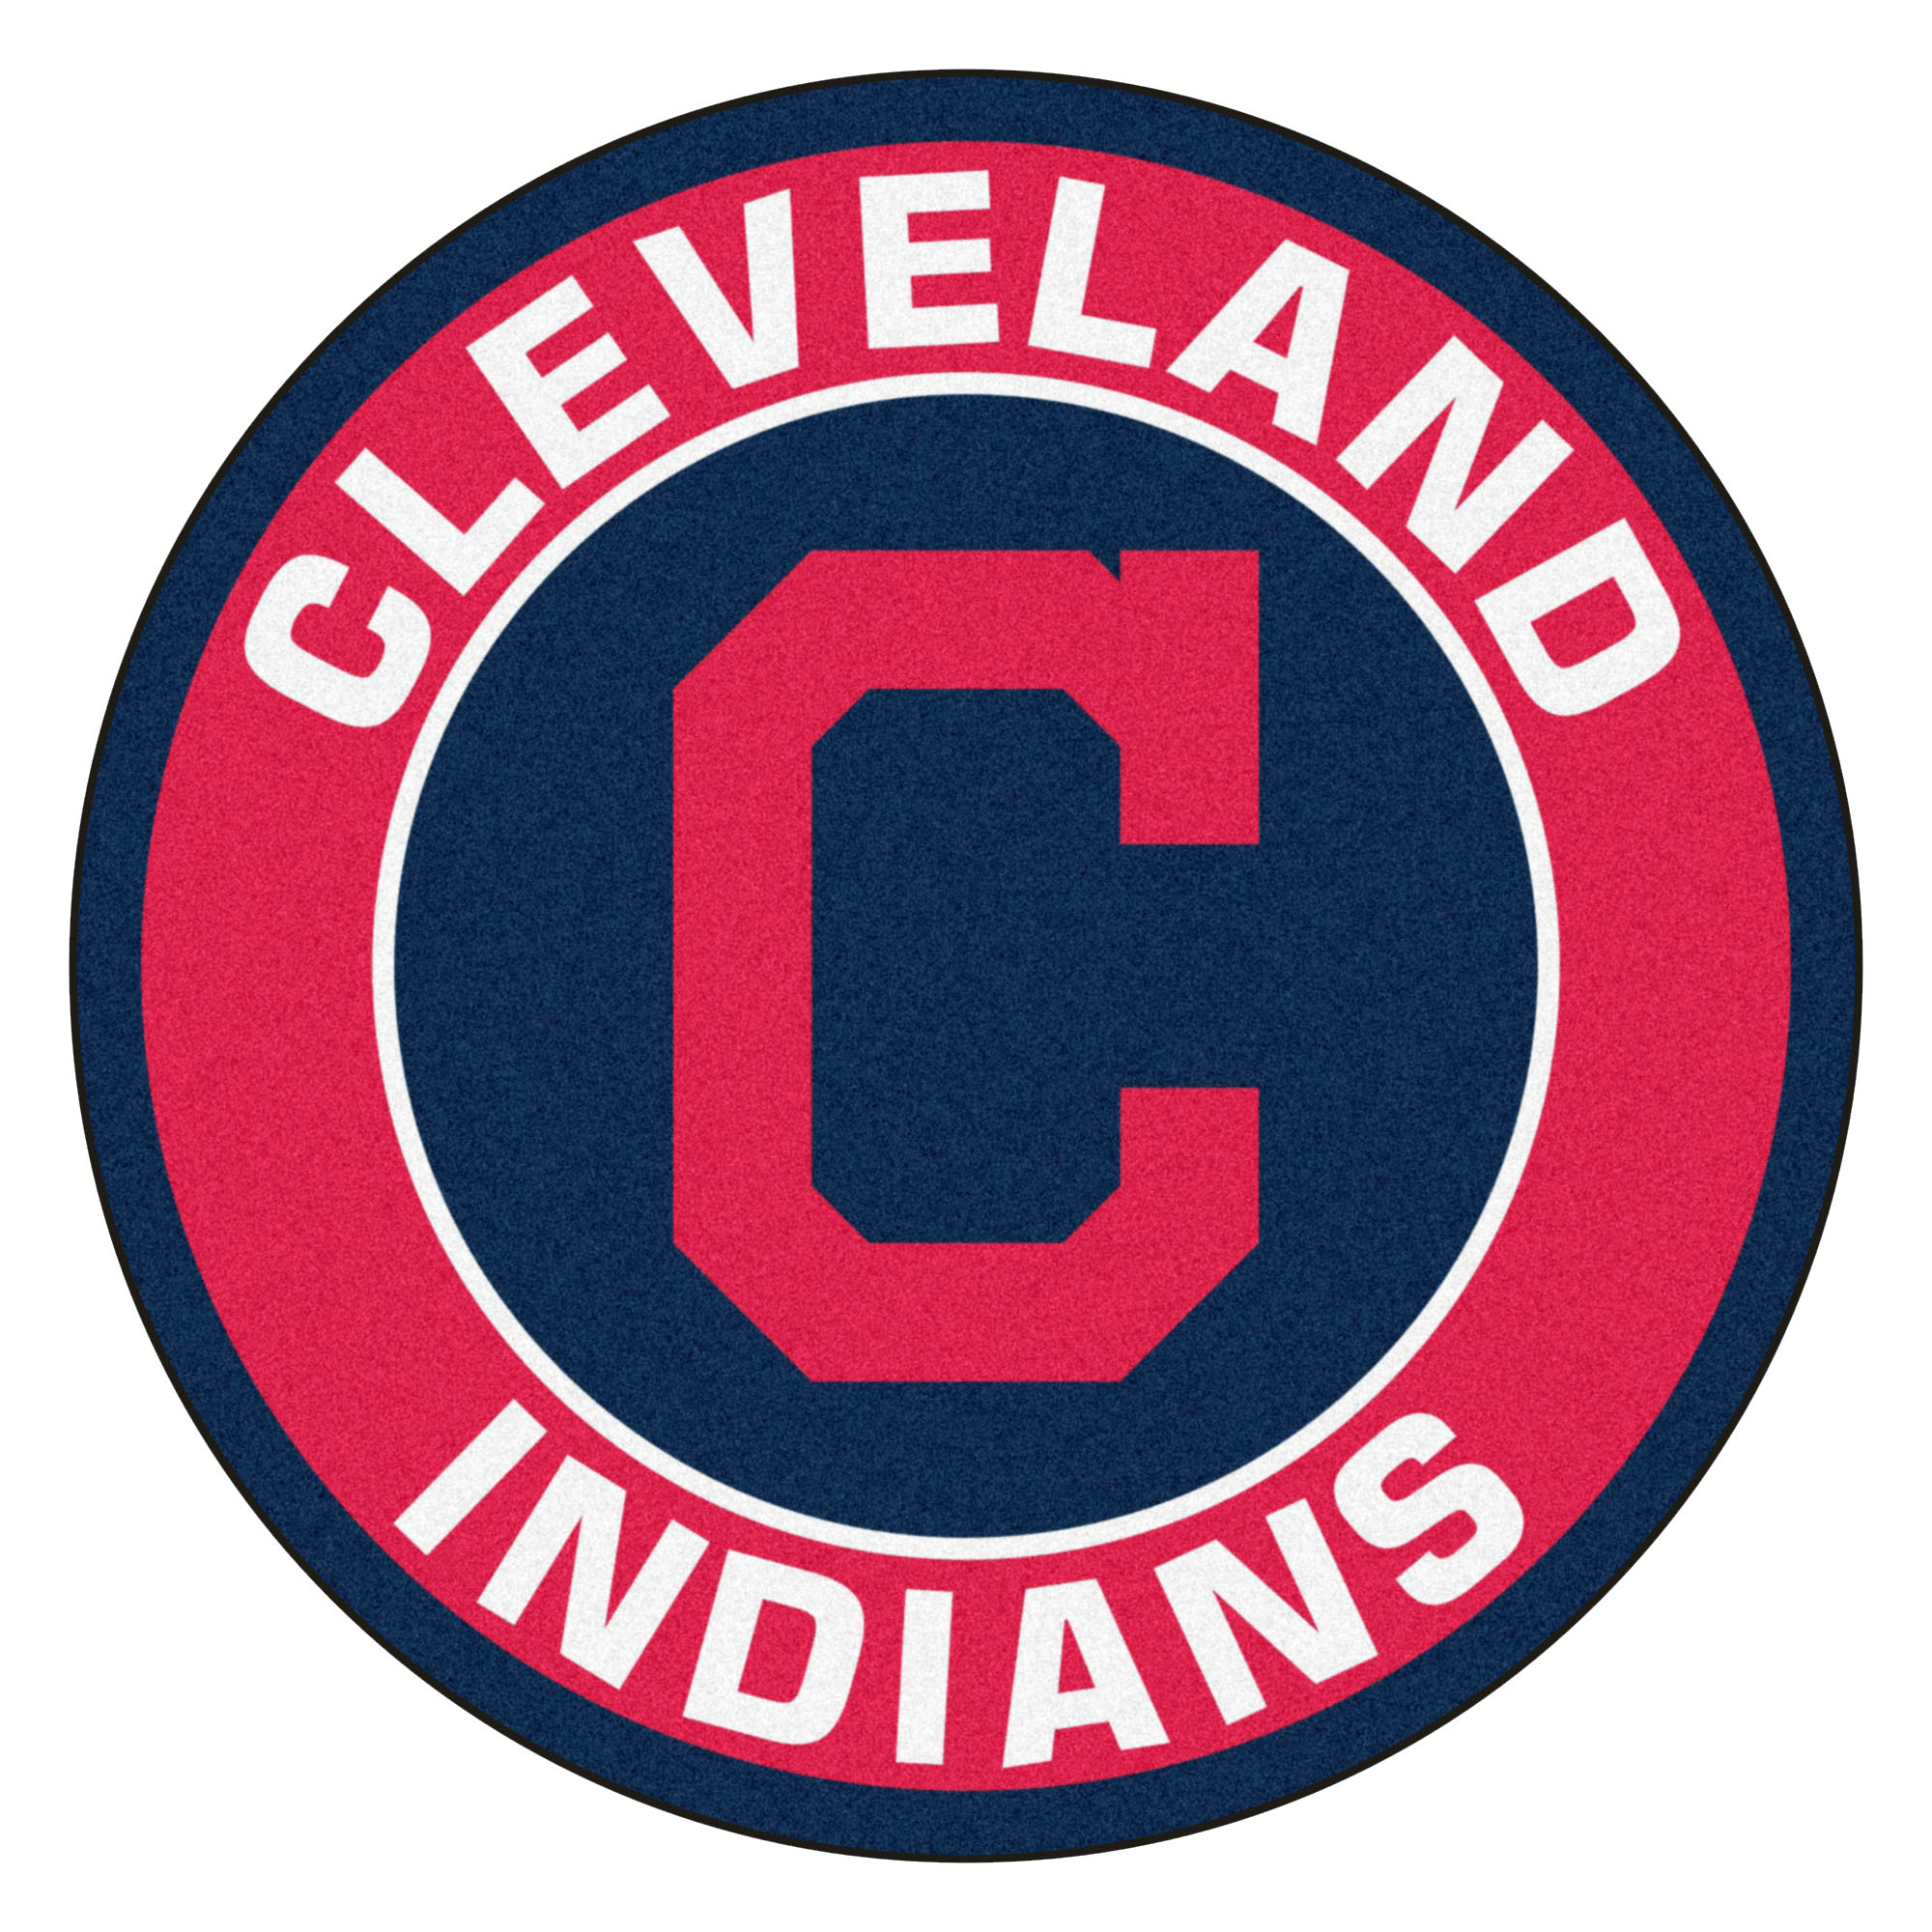 Presale Codes To Purchase Tickets For Cleveland Indians